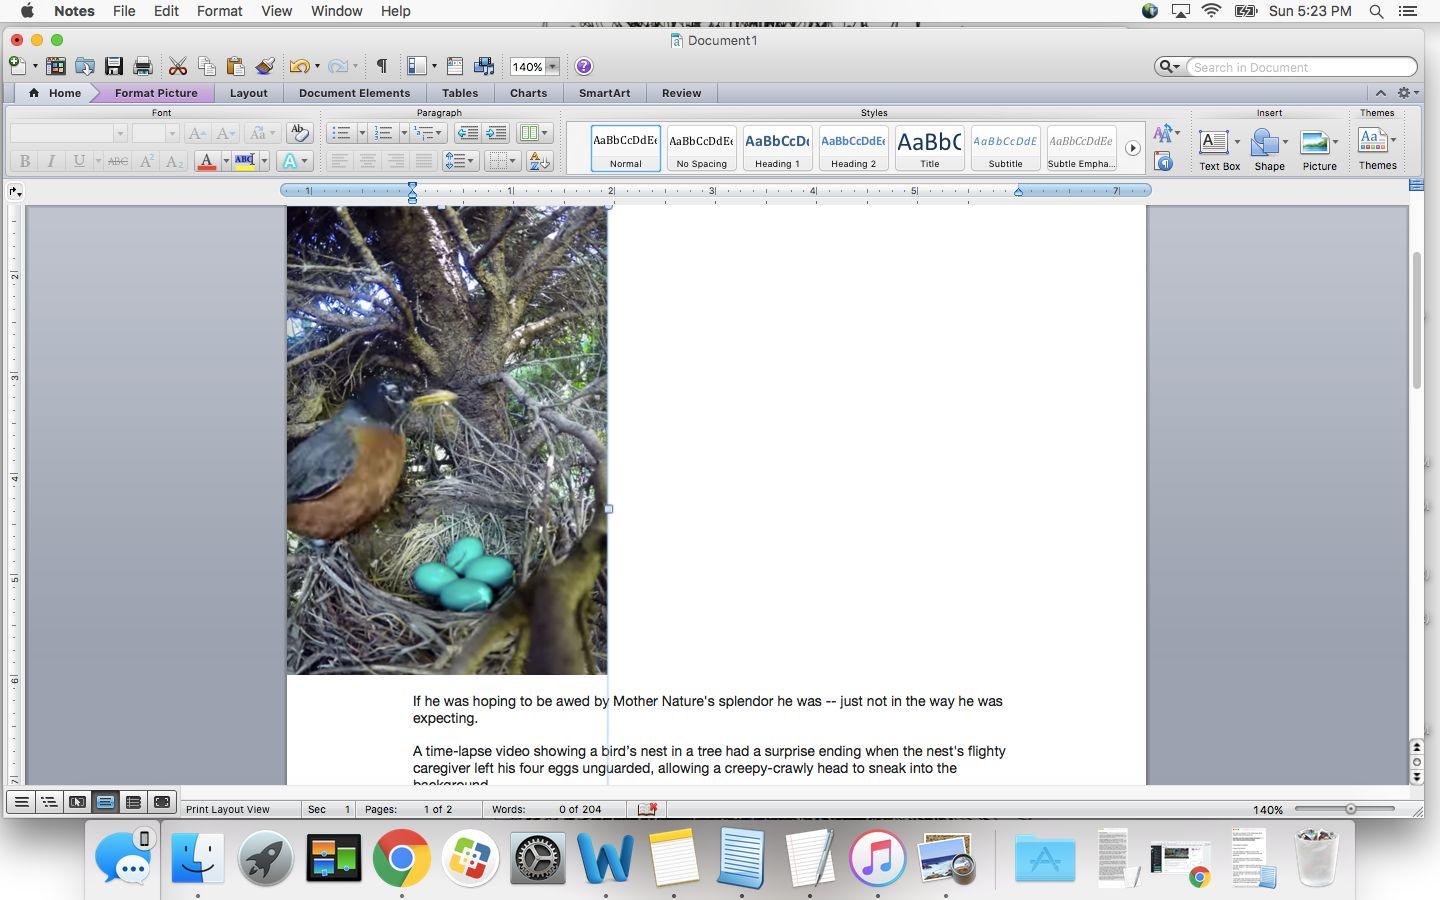 A time-lapse video captured a snake stealing eggs out of a nest.